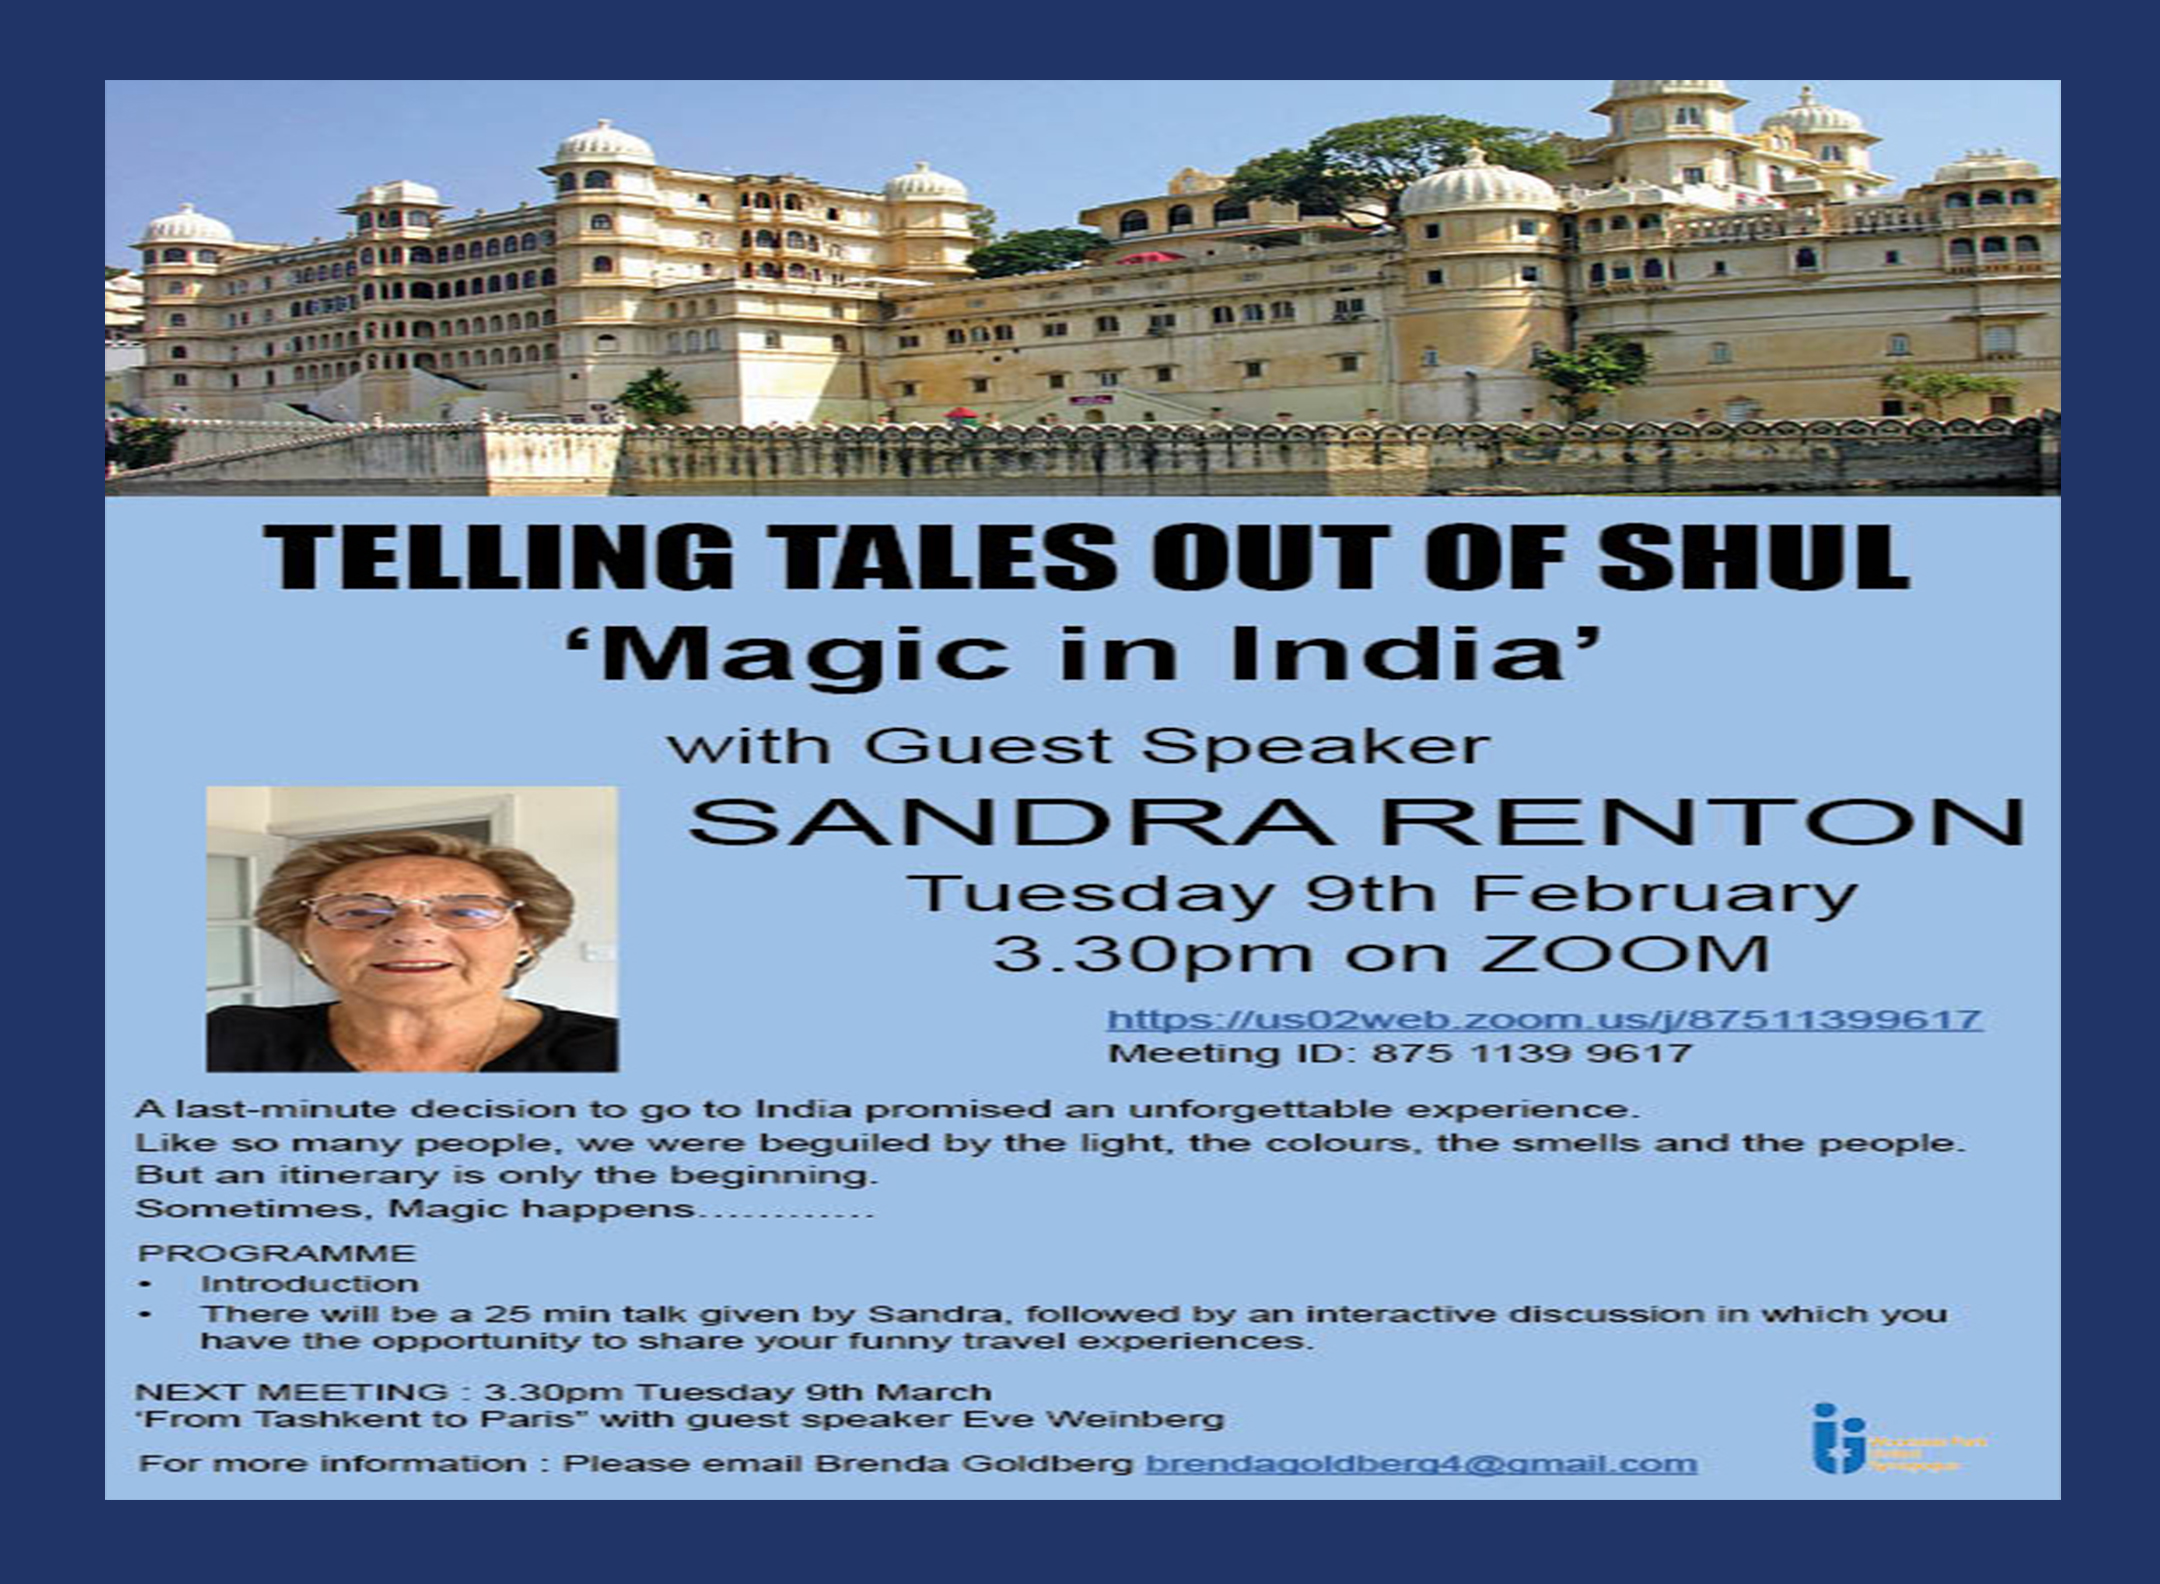 03 telling tales out of shul magic in In